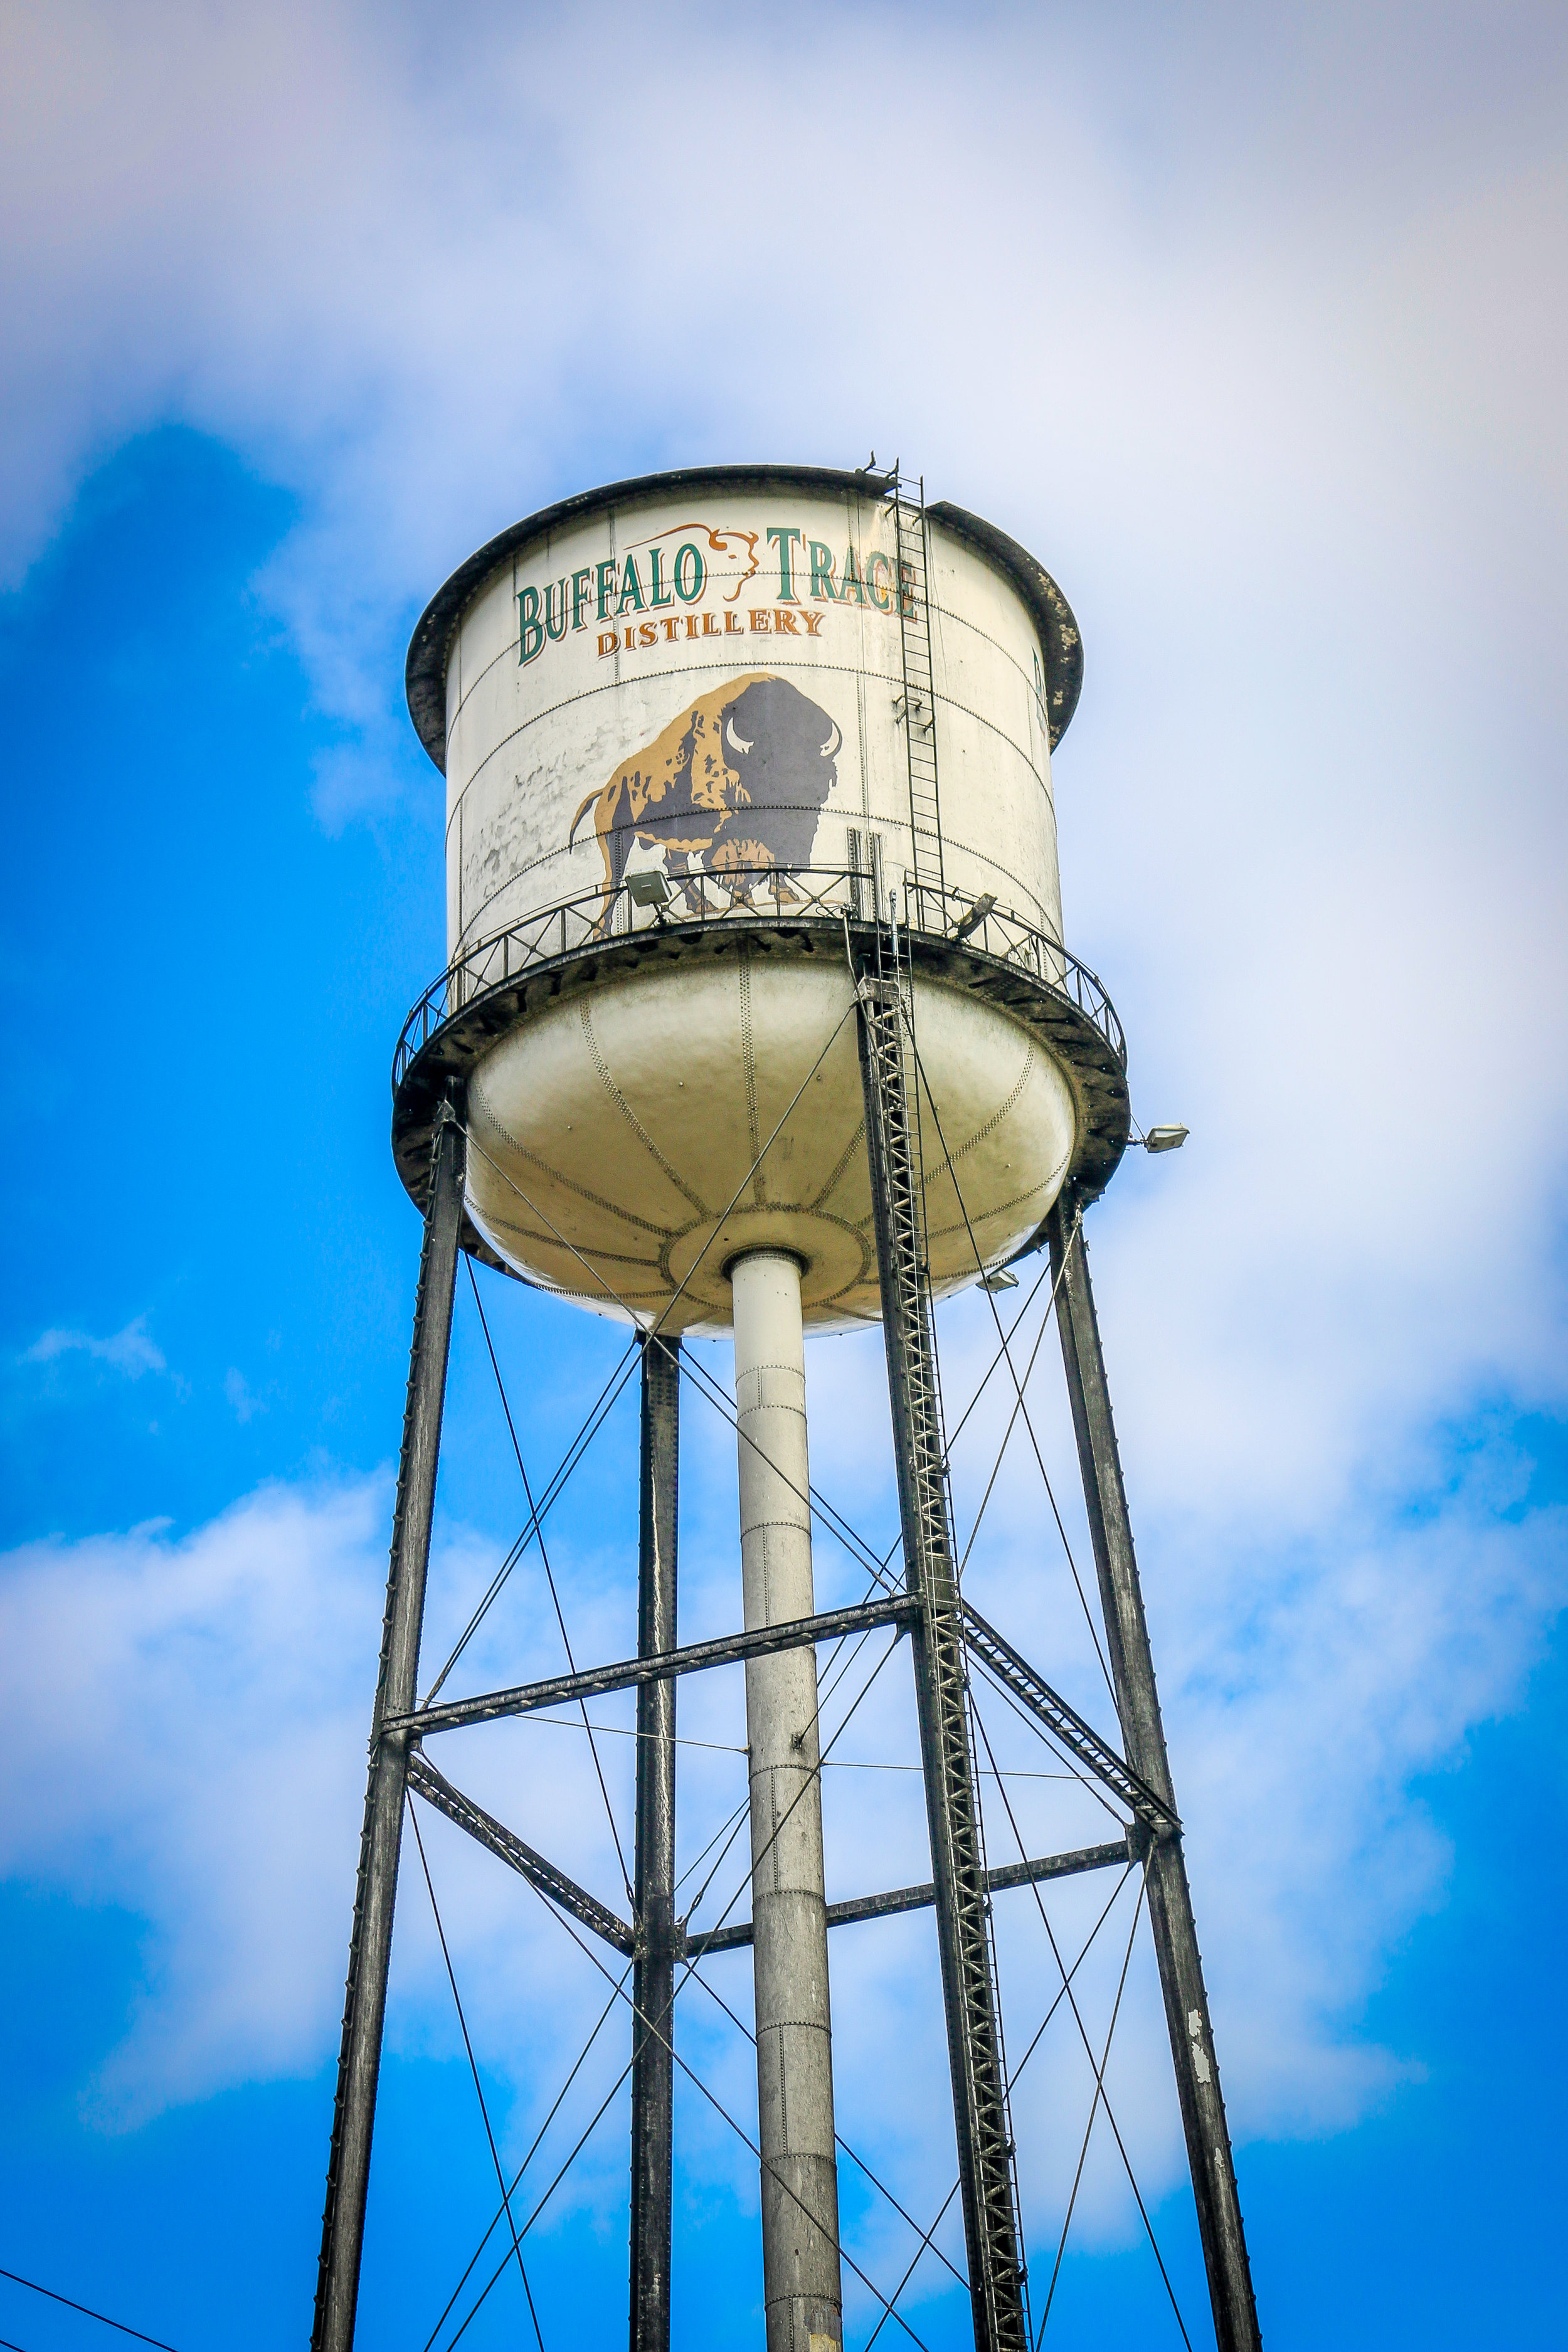 The Water Tower at Buffalo Trace